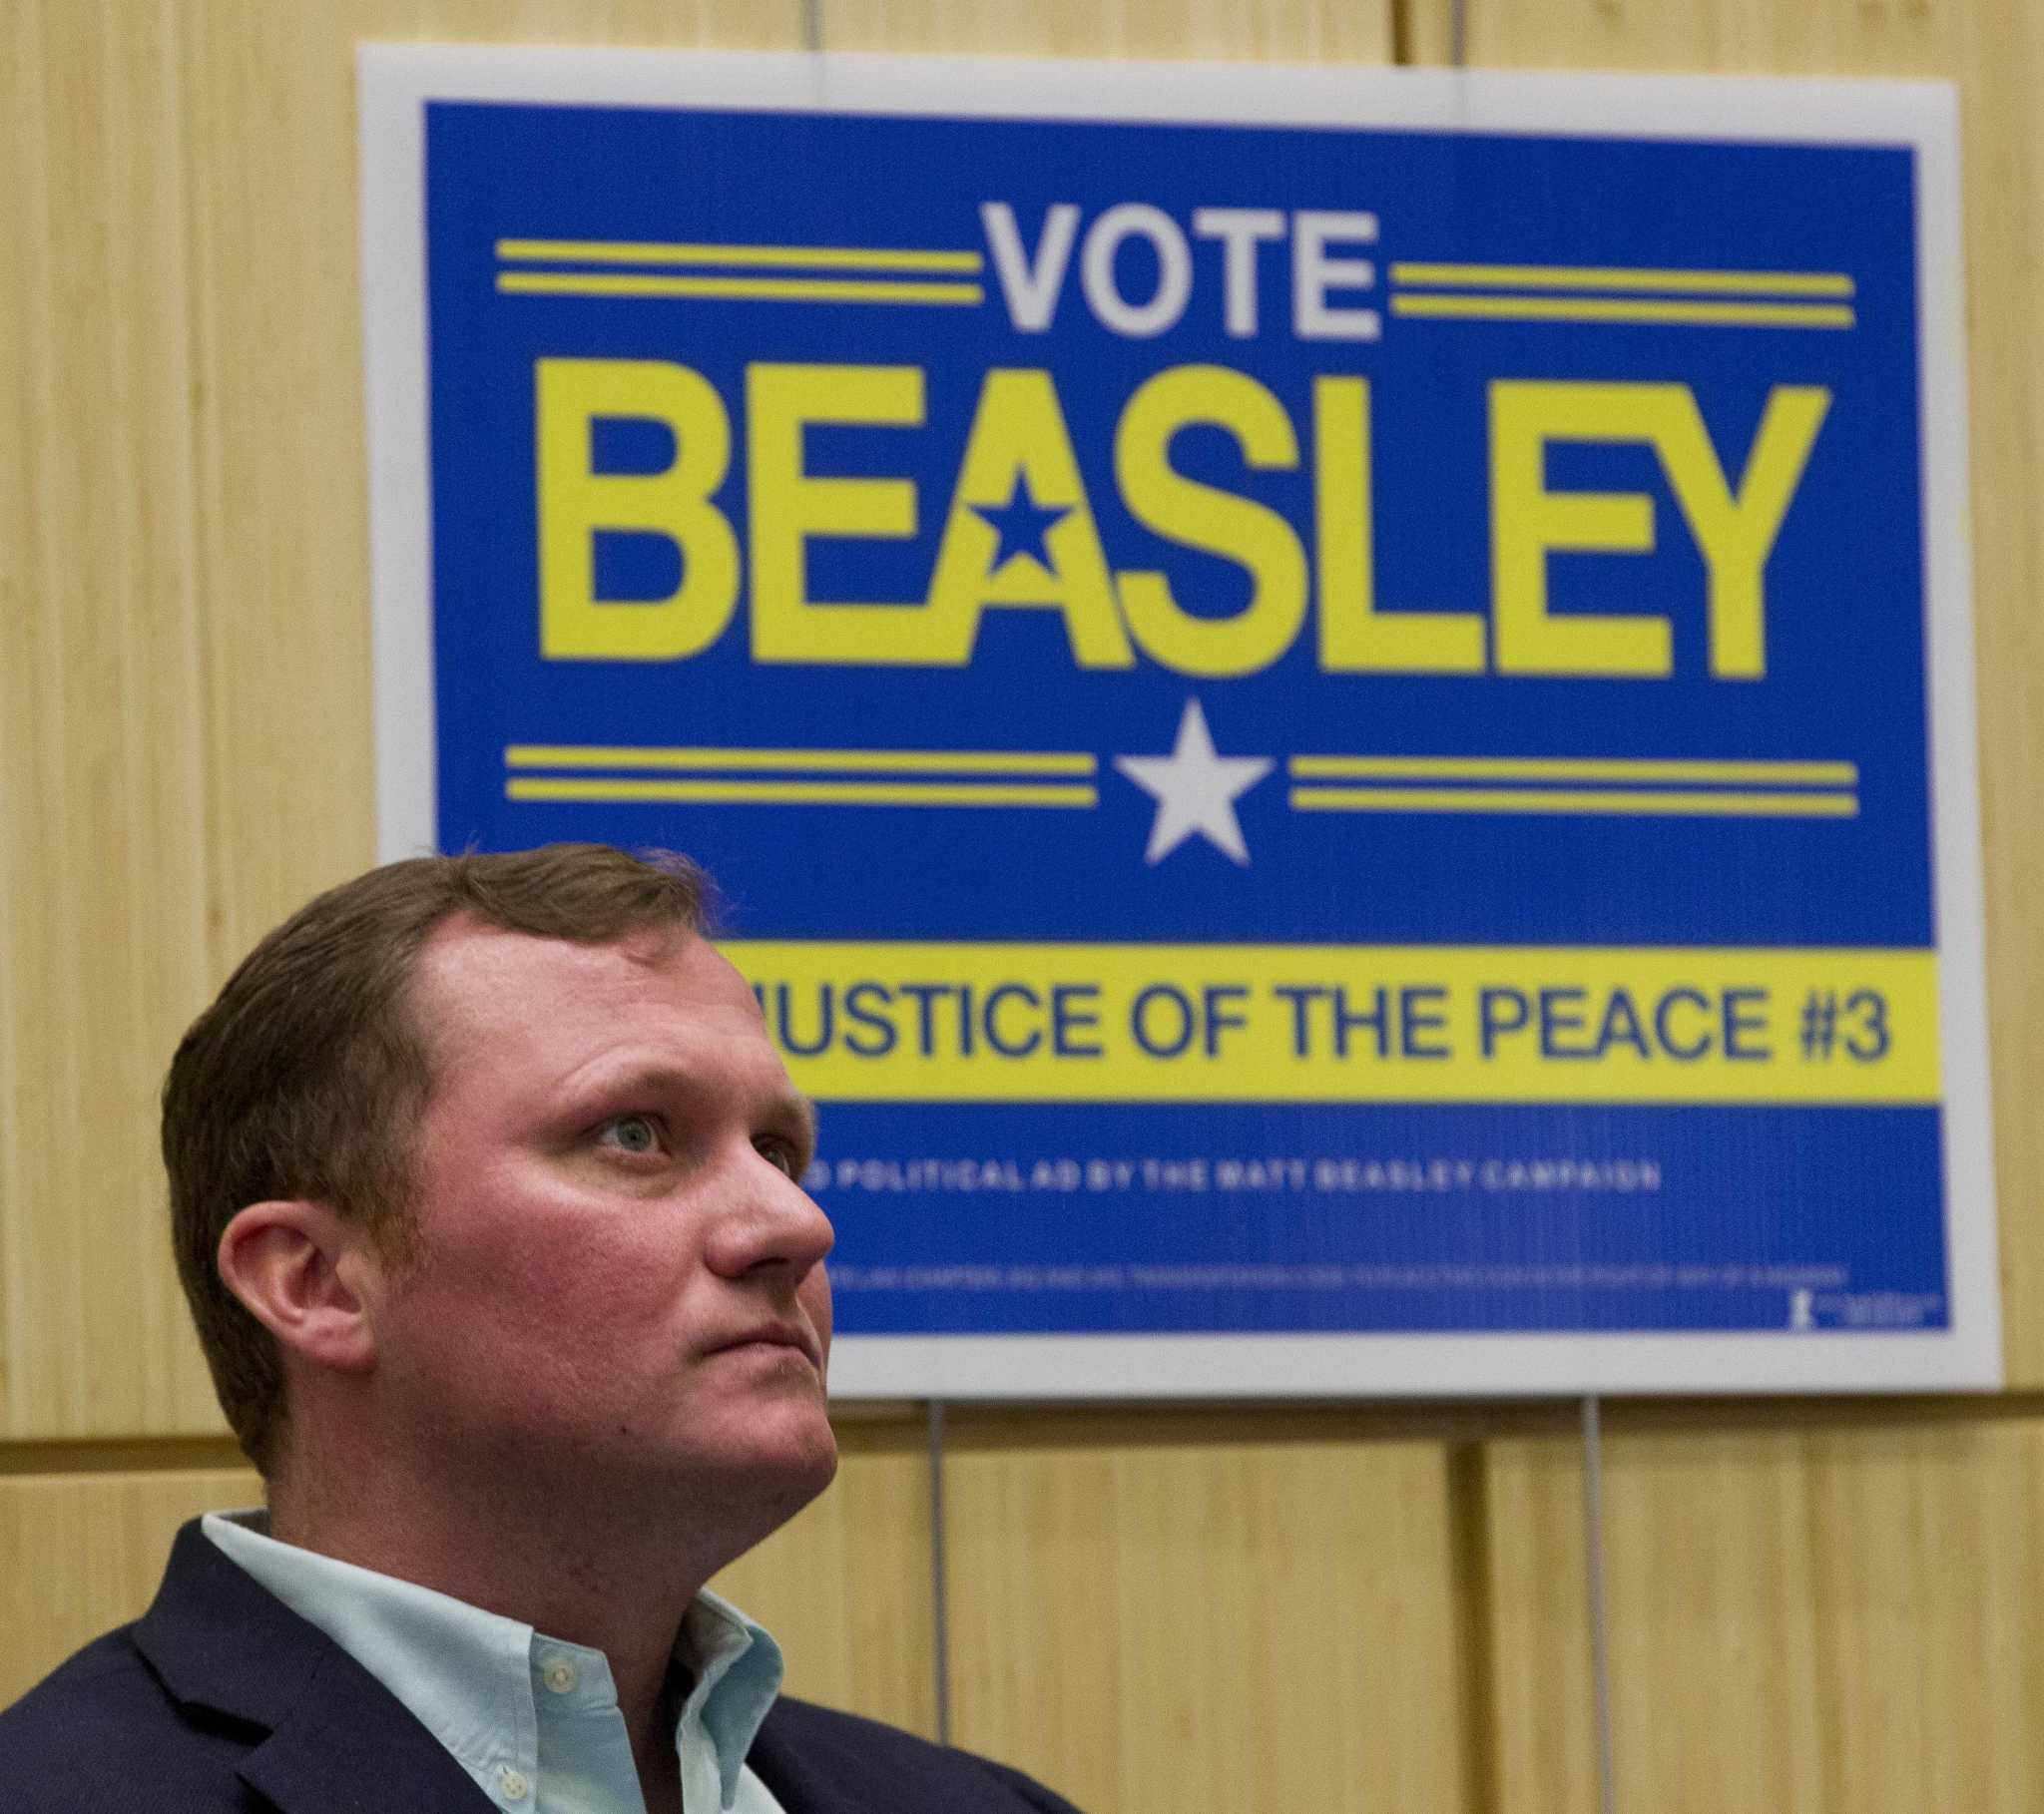 Precinct 3 commissioner chief of staff Matt Beasley wins